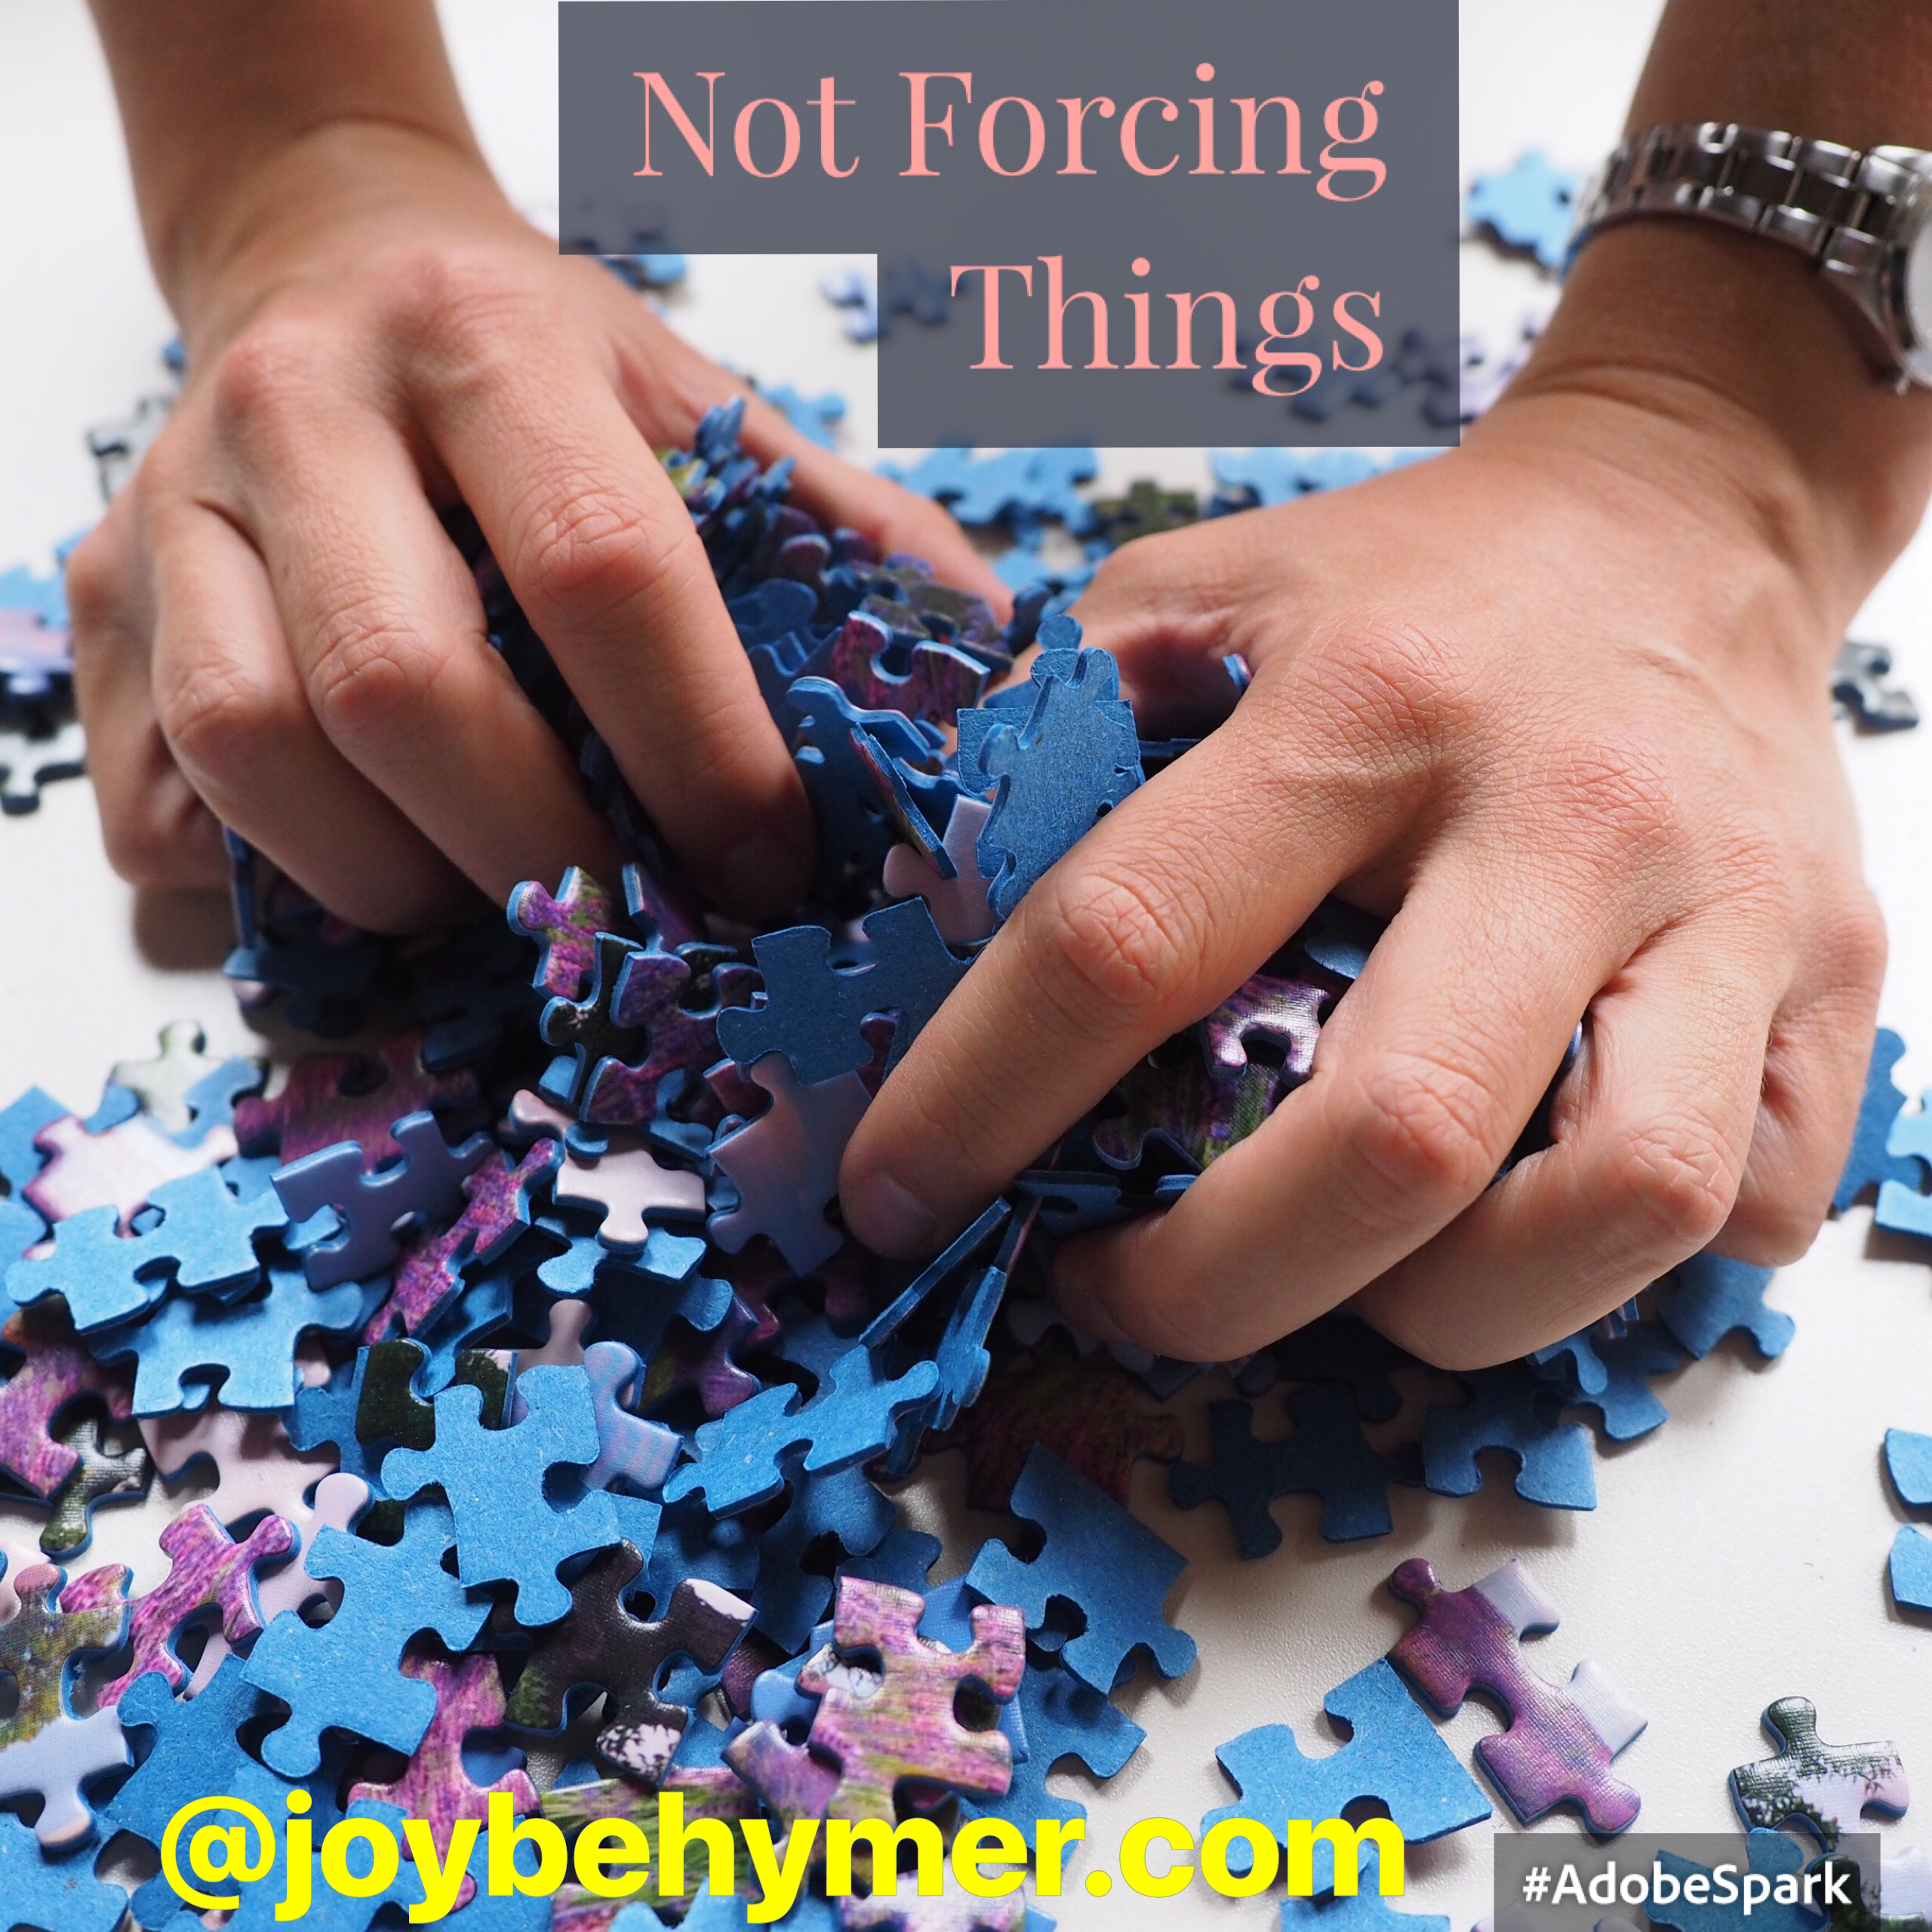 Not forcing things